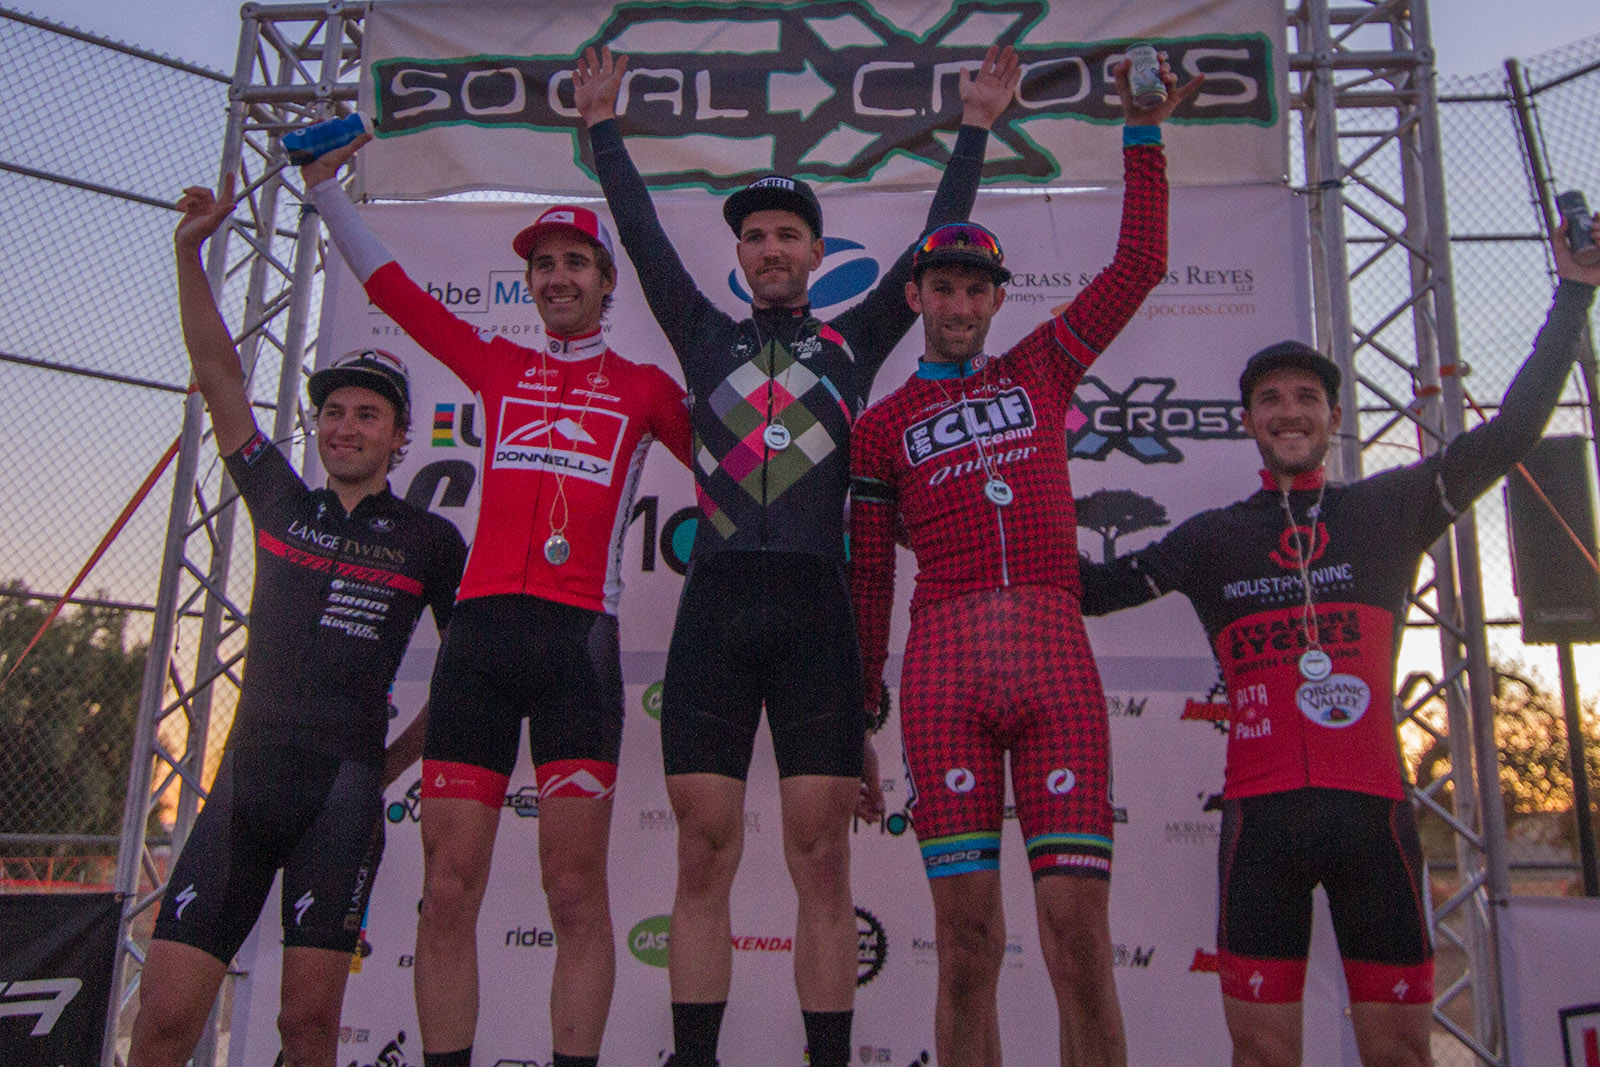 Tobin Ortenblad on the Podium on Day Two of CXLA Cyclocross